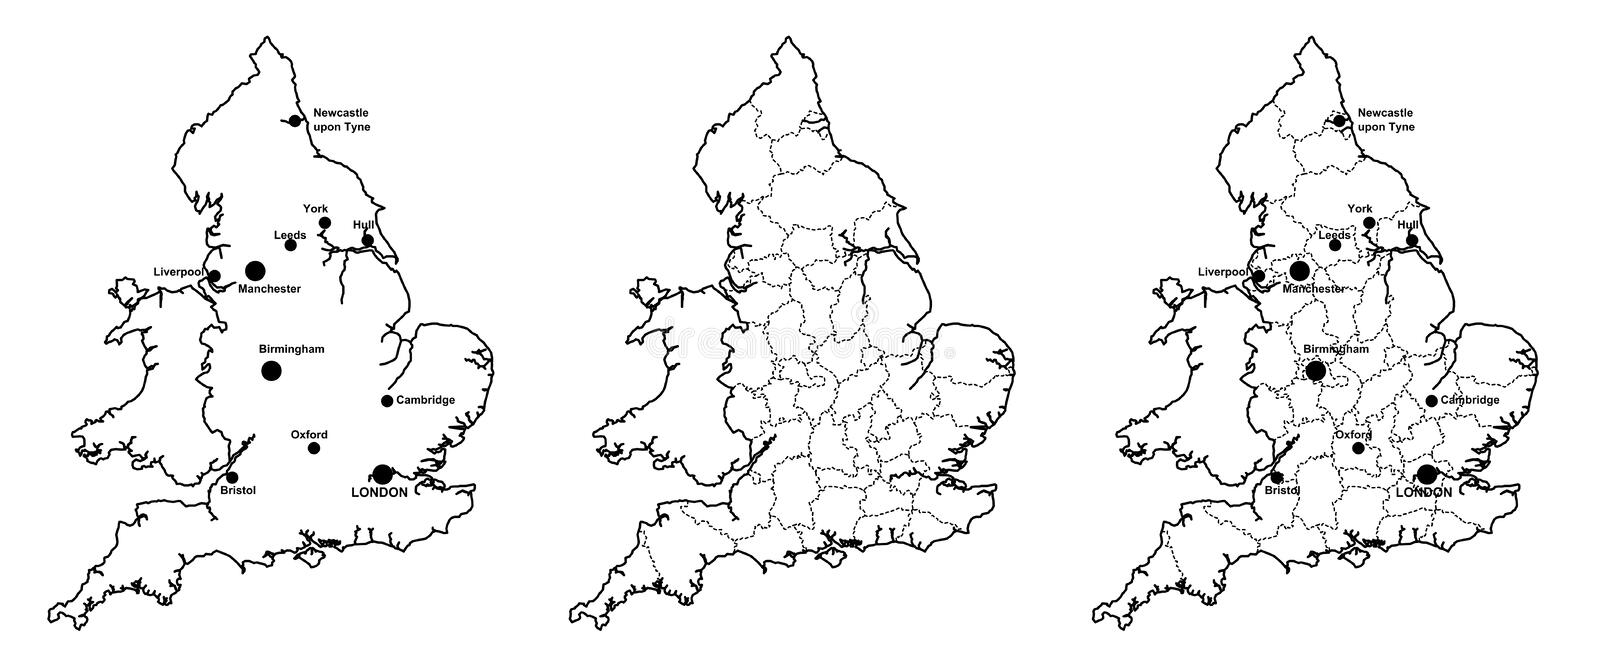 Map Of England Showing Major Cities.Map Of England With Major Cities